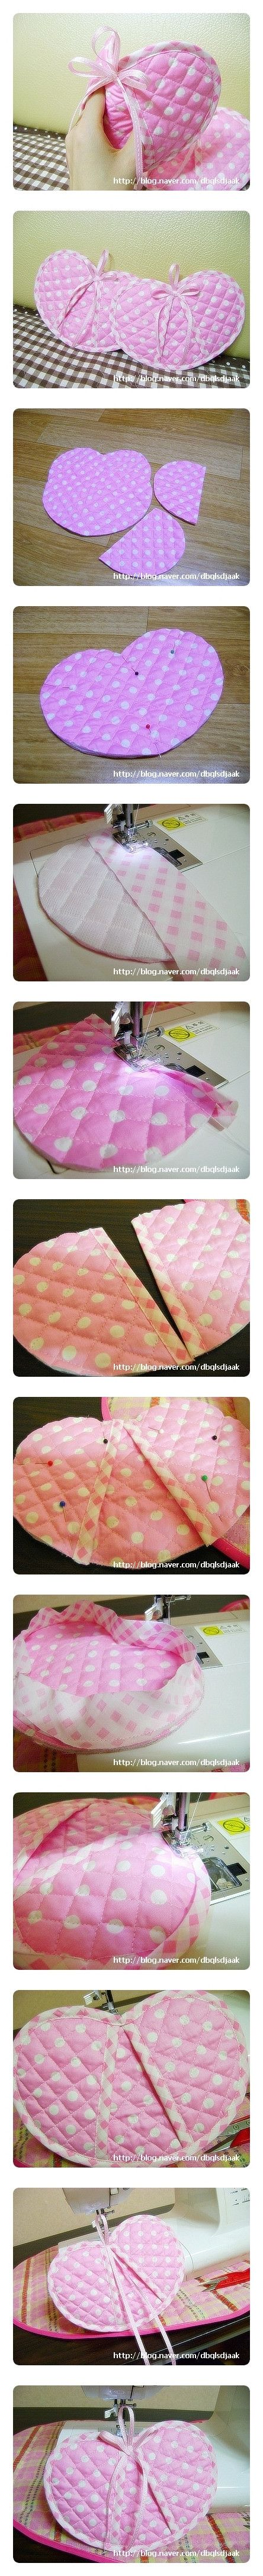 cute and easy potholders - would make a great gift